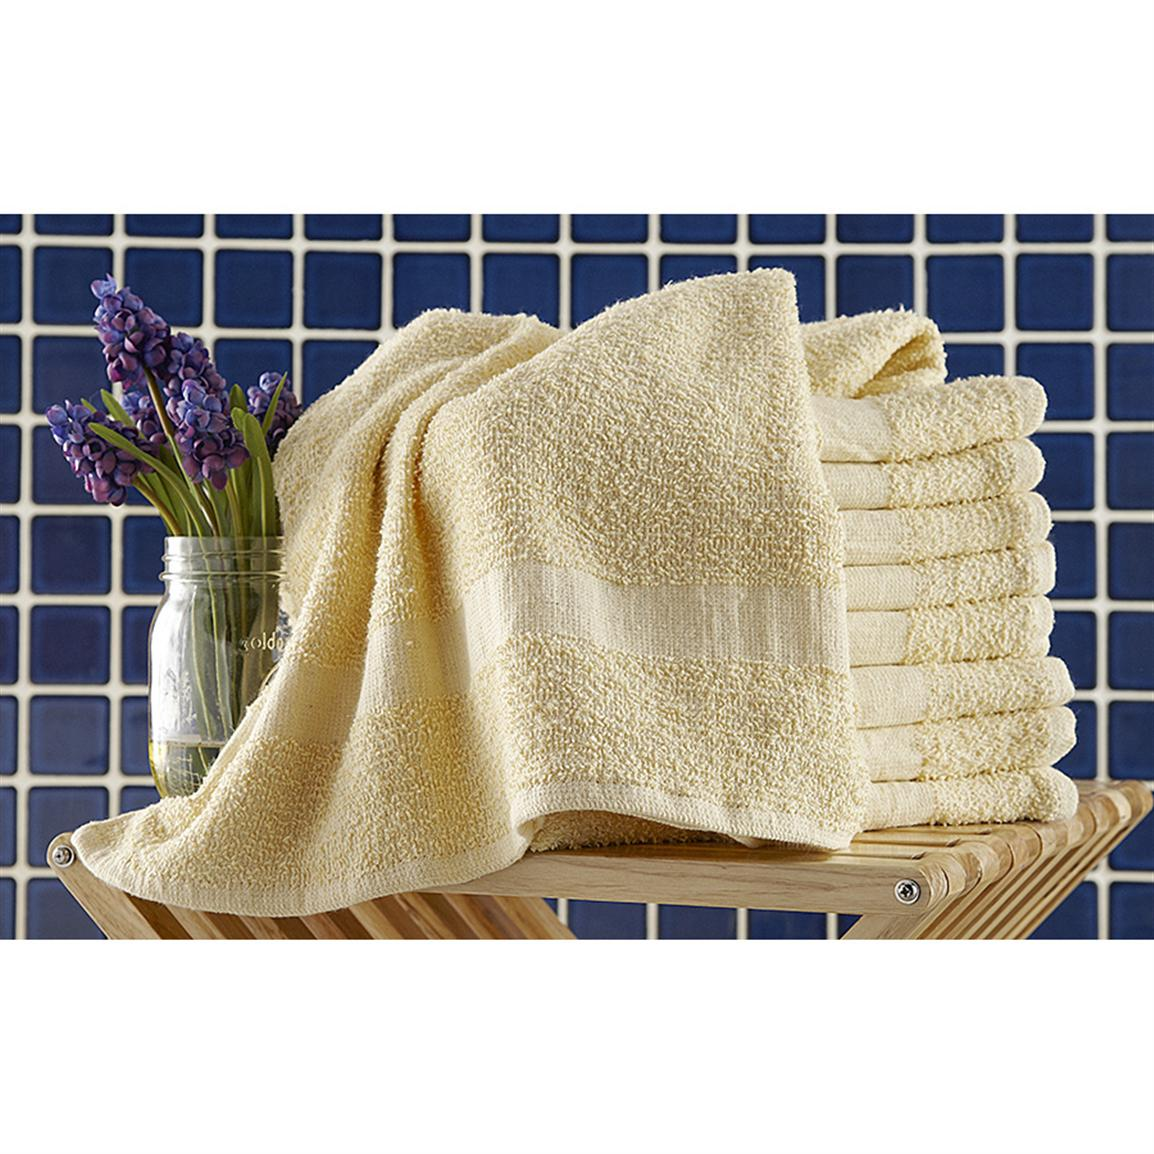 9-Pk. of Cotton Terry Towels, Yellow